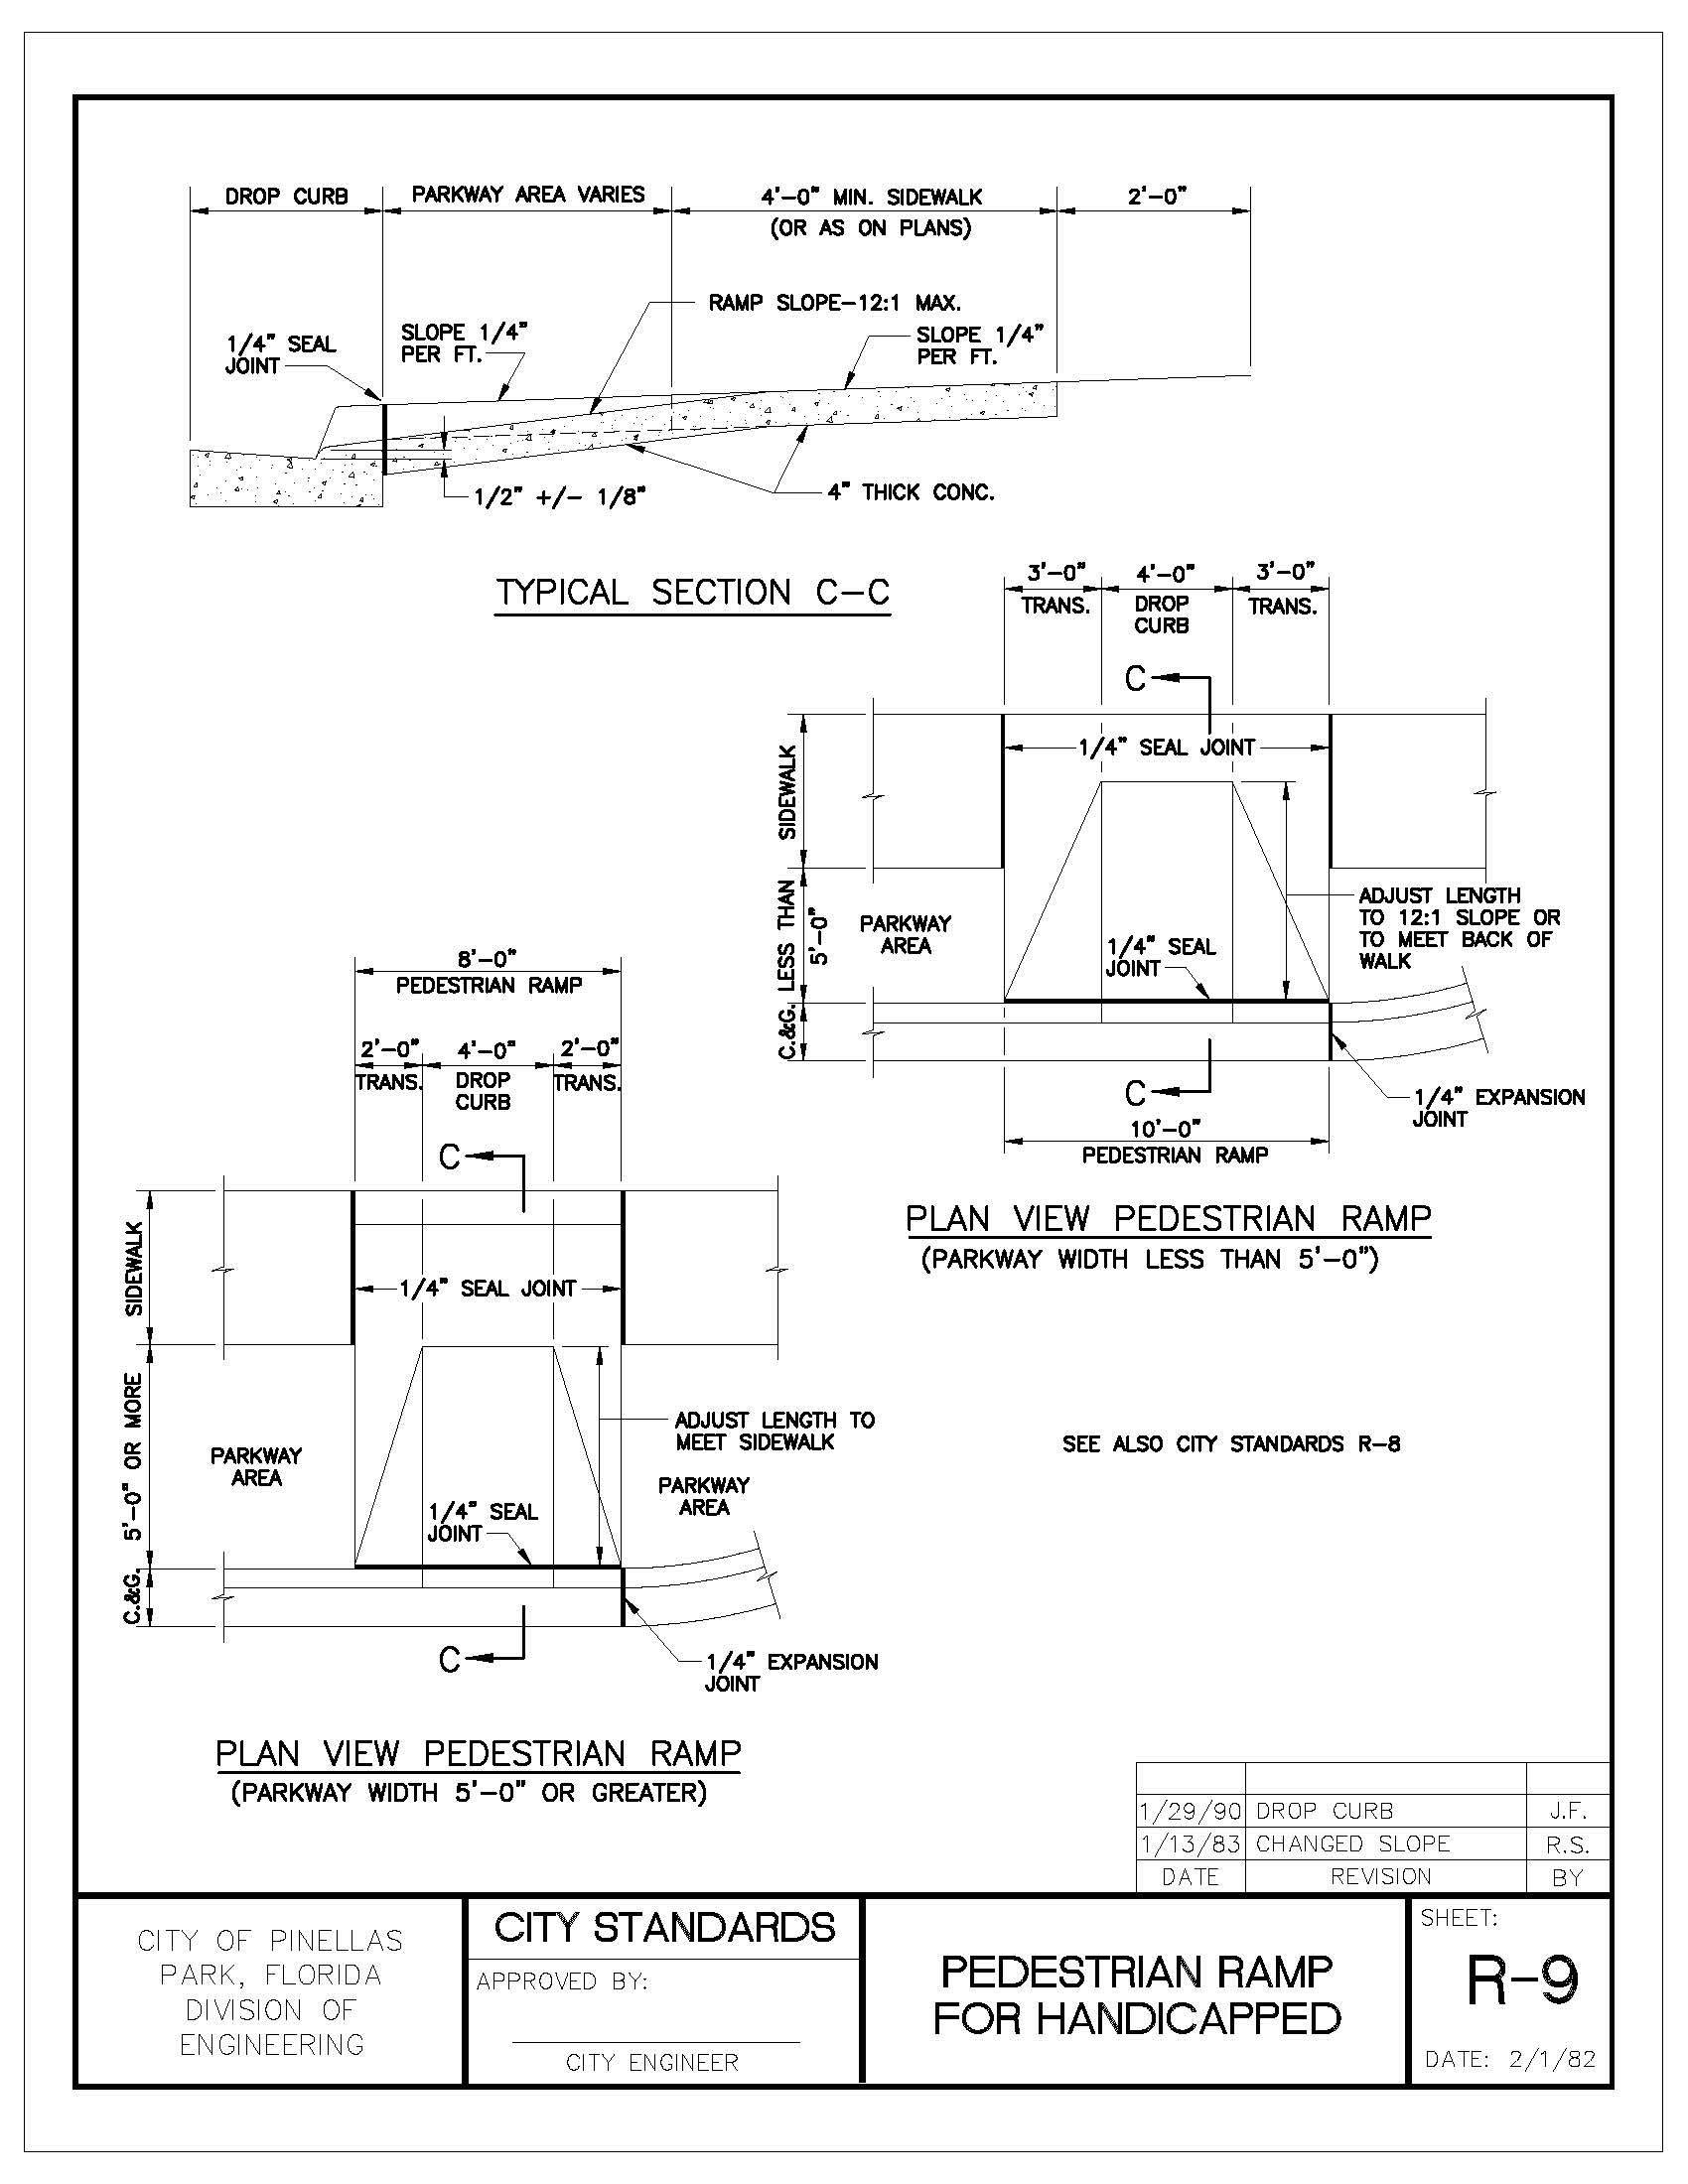 Engineering Manual v5_201908121127291138_Page_046 pedestrian ramp for handicapped